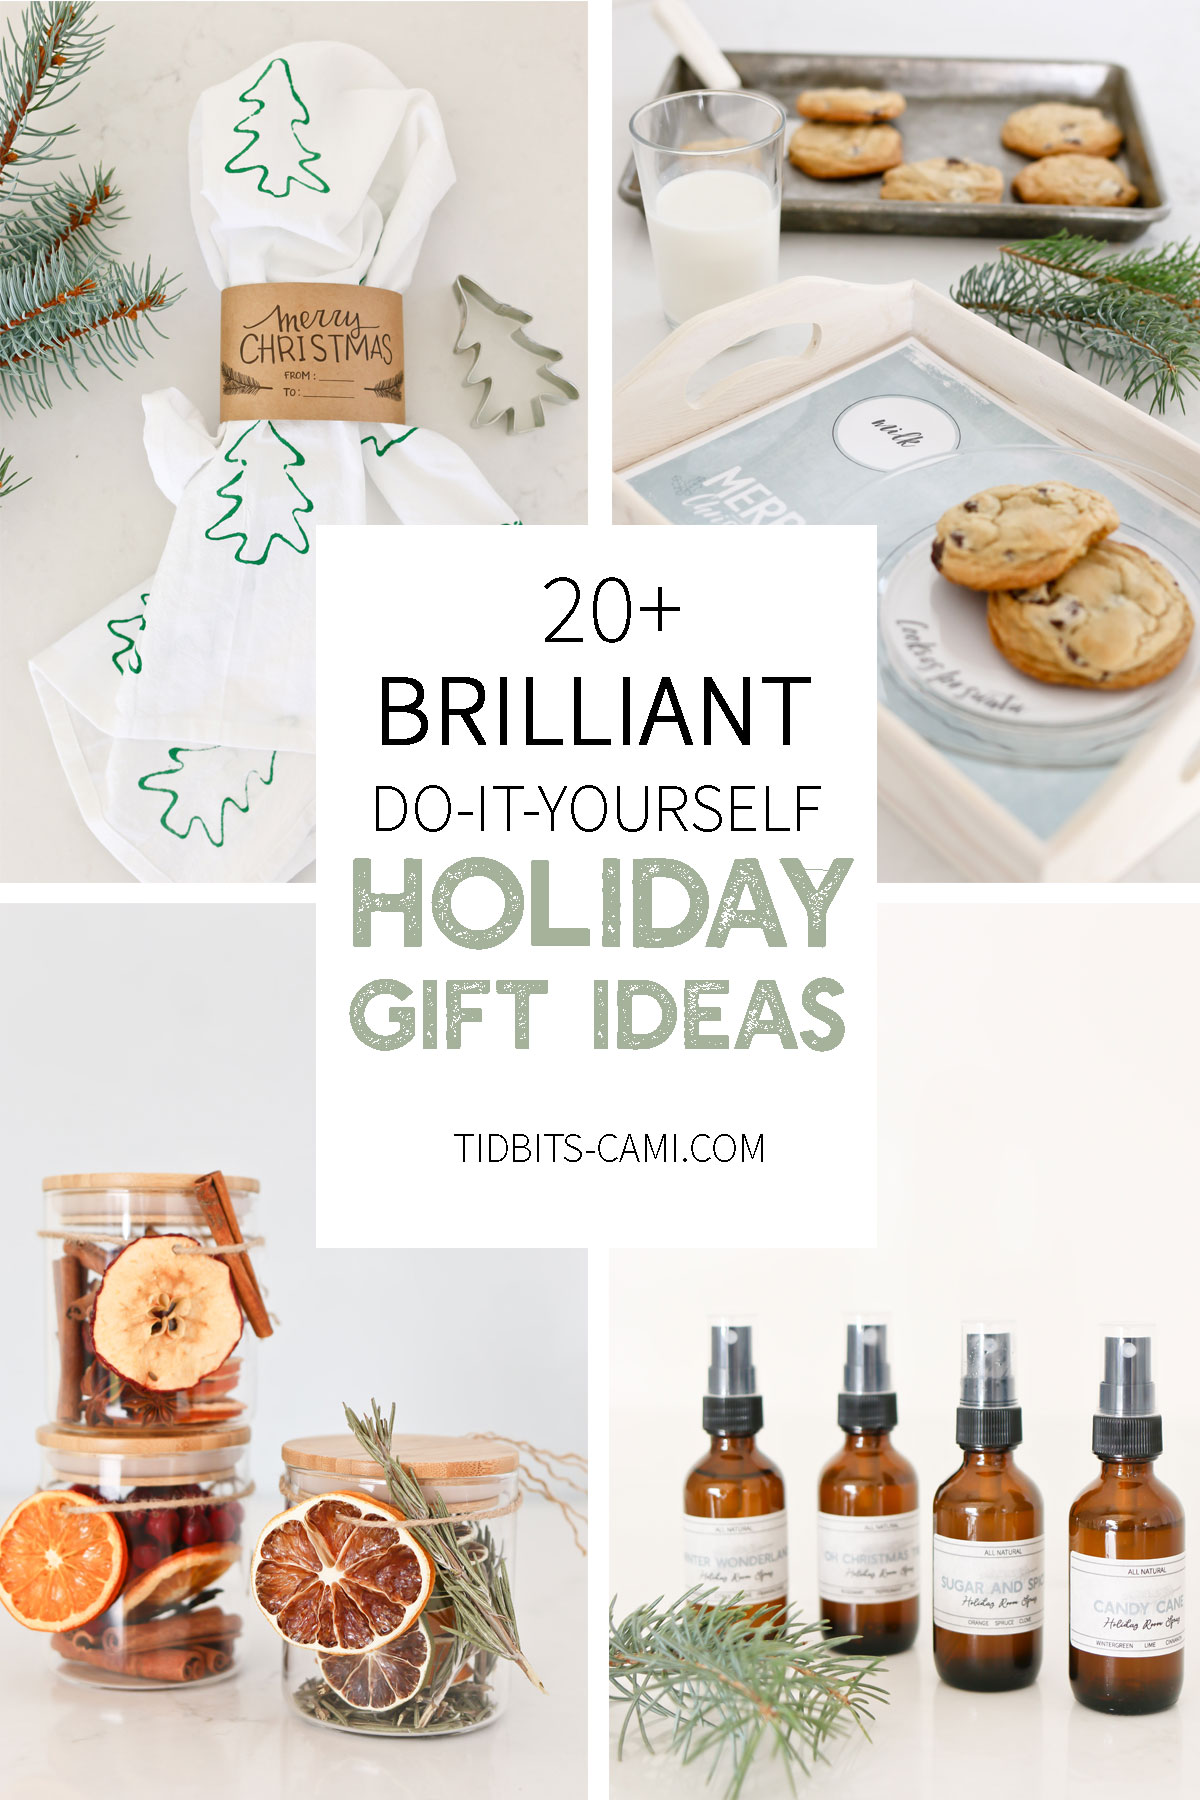 Over 20 Holiday gift ideas